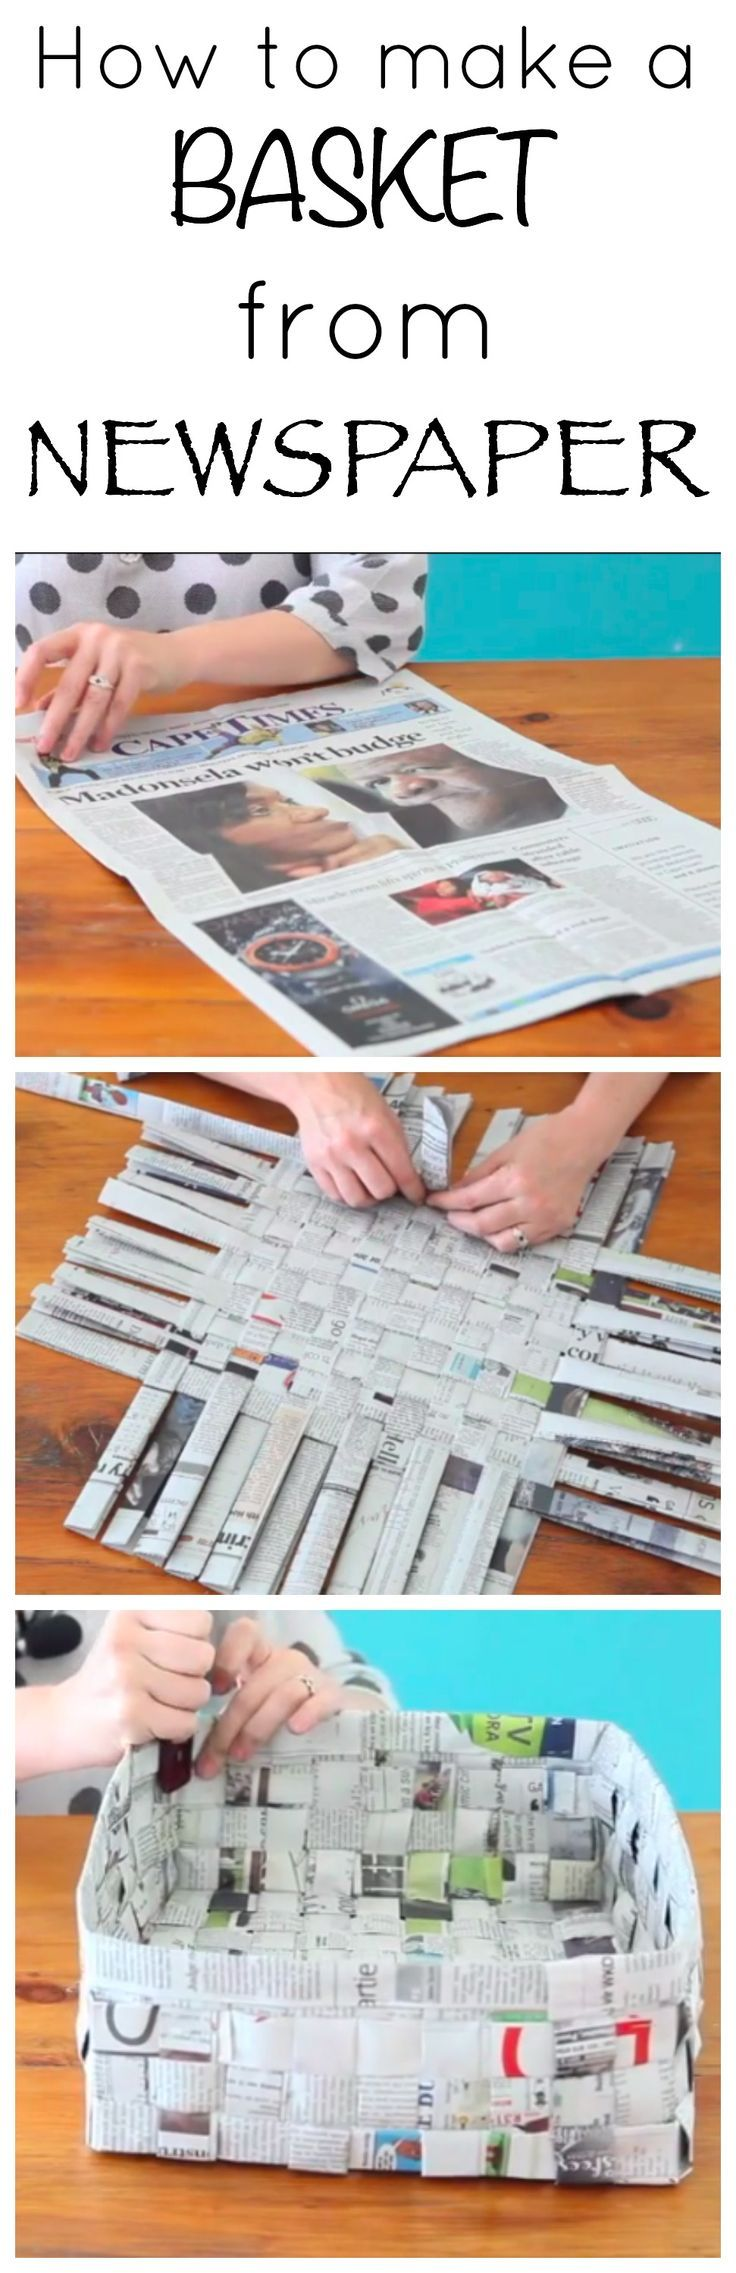 Fun kids project- make a basket from newspaper!